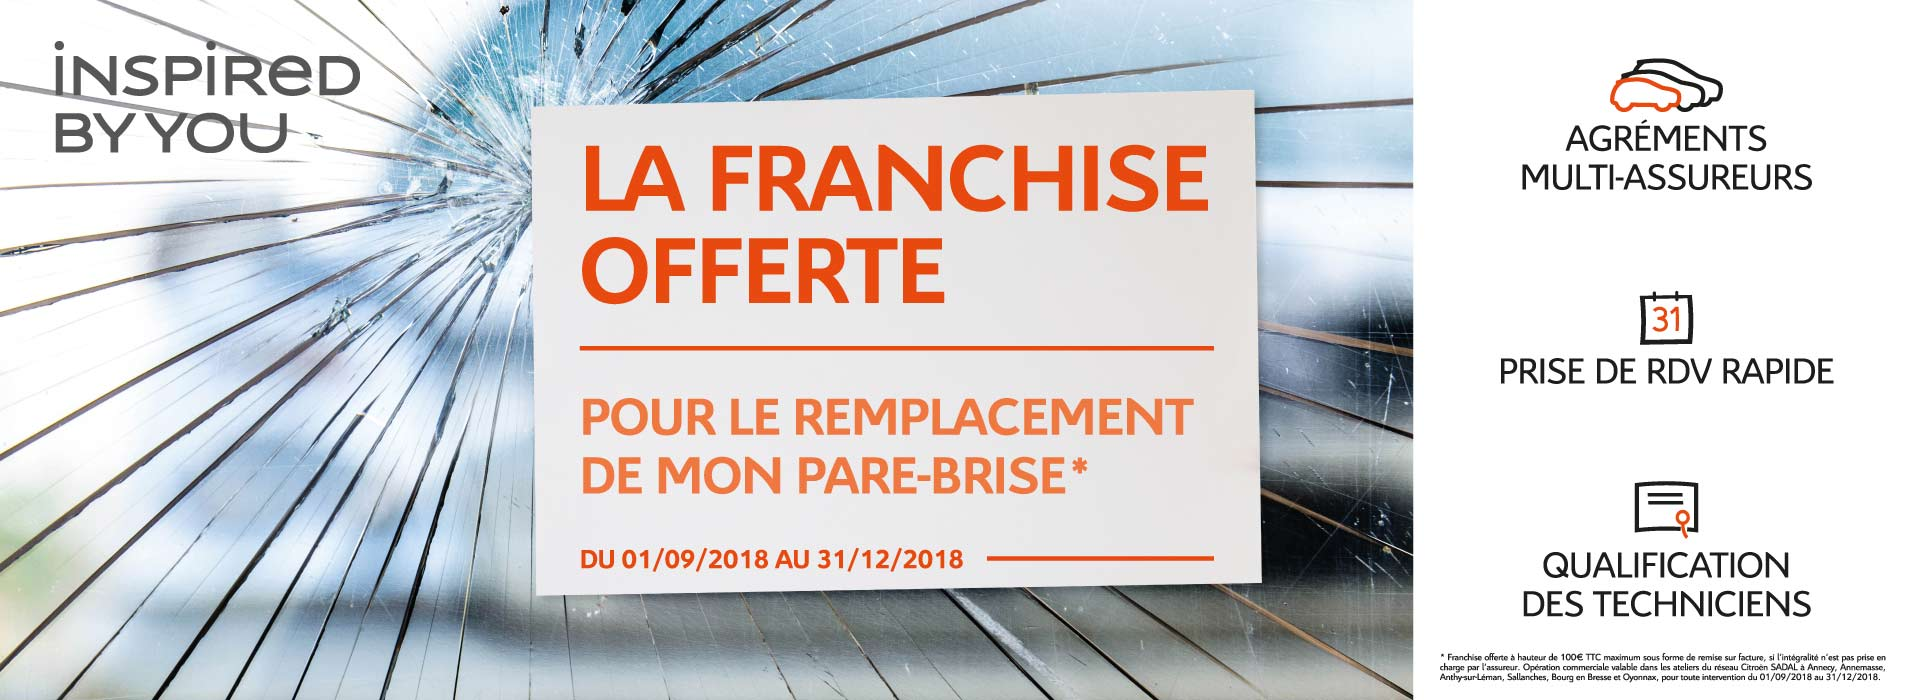 franchise offerte pour le remplacement de votre pare brise promotions chez votre. Black Bedroom Furniture Sets. Home Design Ideas